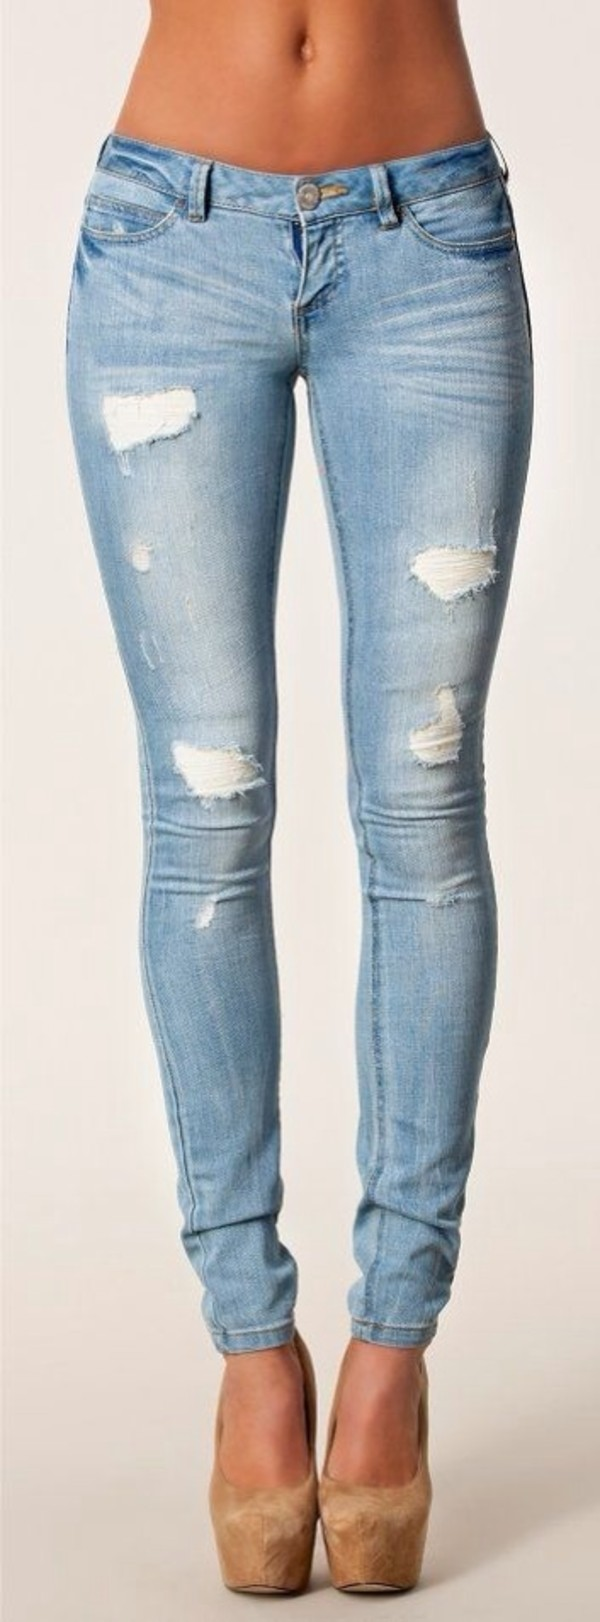 sashimicraft.ga carries latest styles of cheap juniors jeans including skinny jeans for ladies, juniors jeans, womens denim and straight leg jeans at affordable prices. Stylish Sexy Acid Wash Ripped Denim Skinny Jeans Was: $ Now: $ Stylish Butt Lifting High Rise 1 Button White Skinny Jeans Butt Lifting Light Wash High.